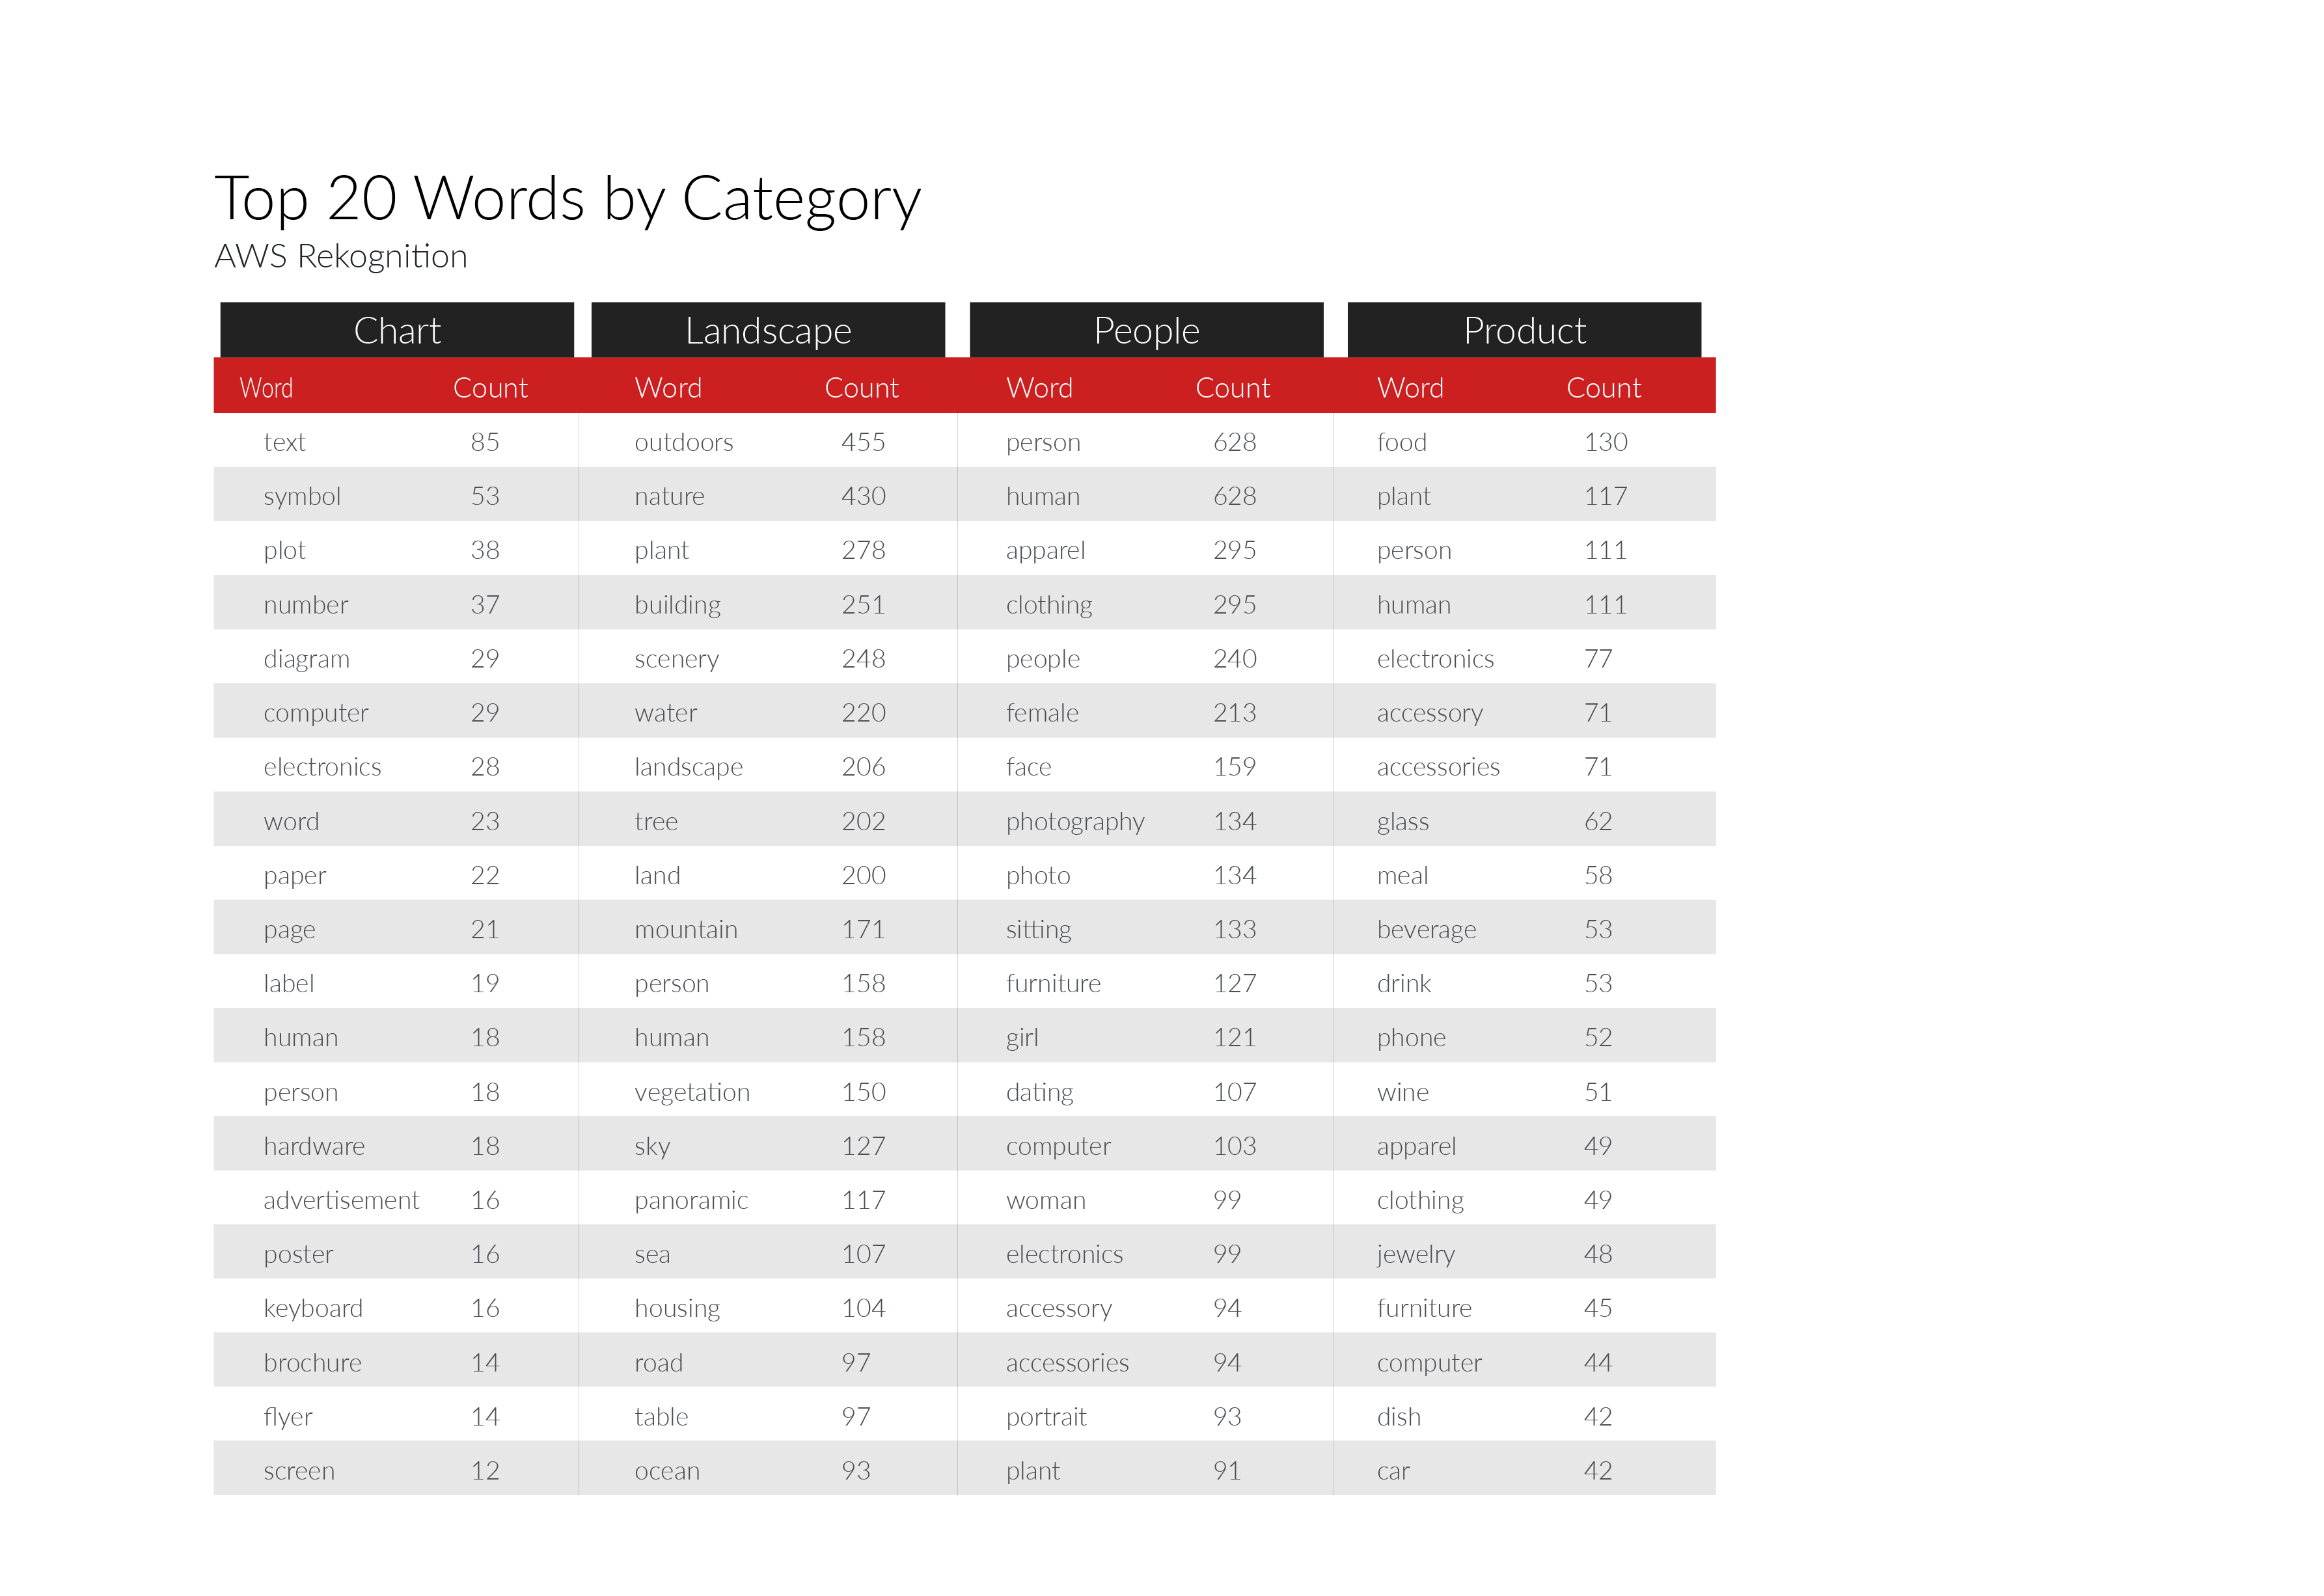 Top 20 keywords AWS Rekognition returned by image category